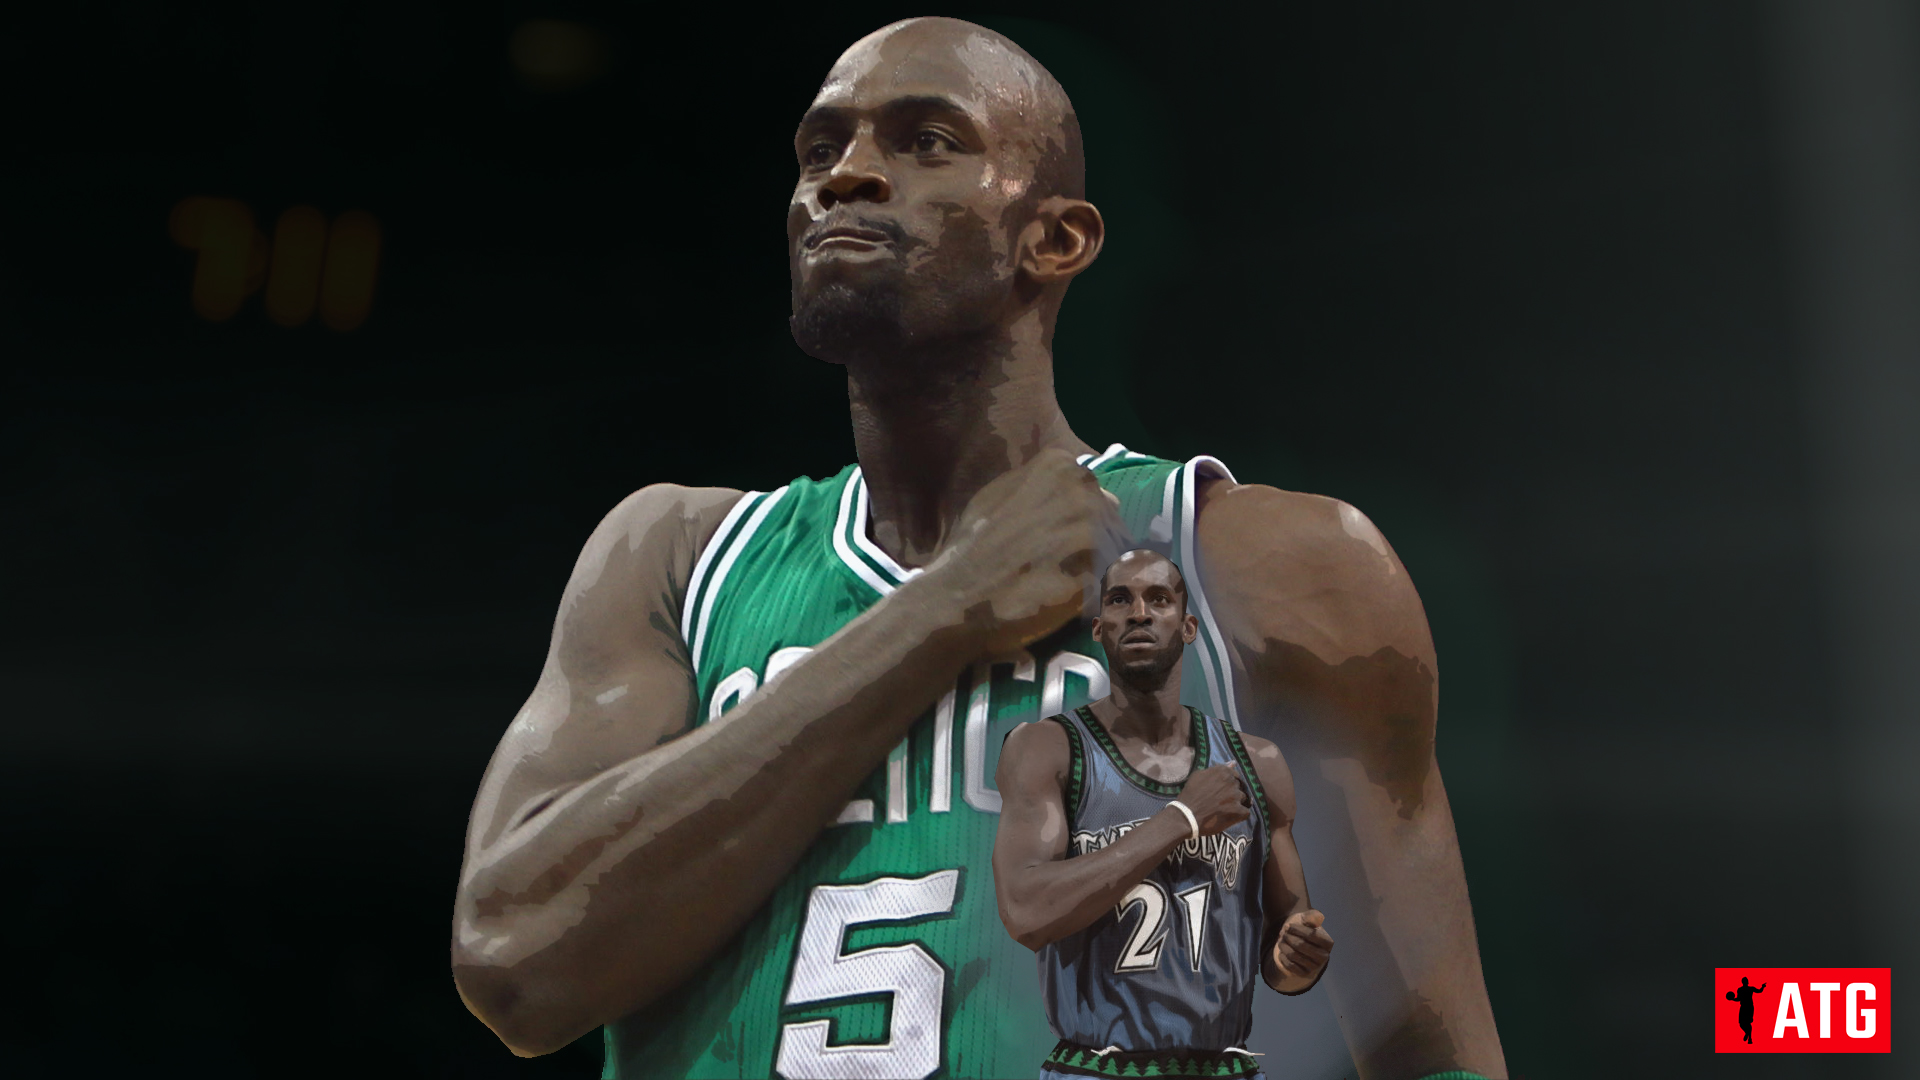 KG's Moments